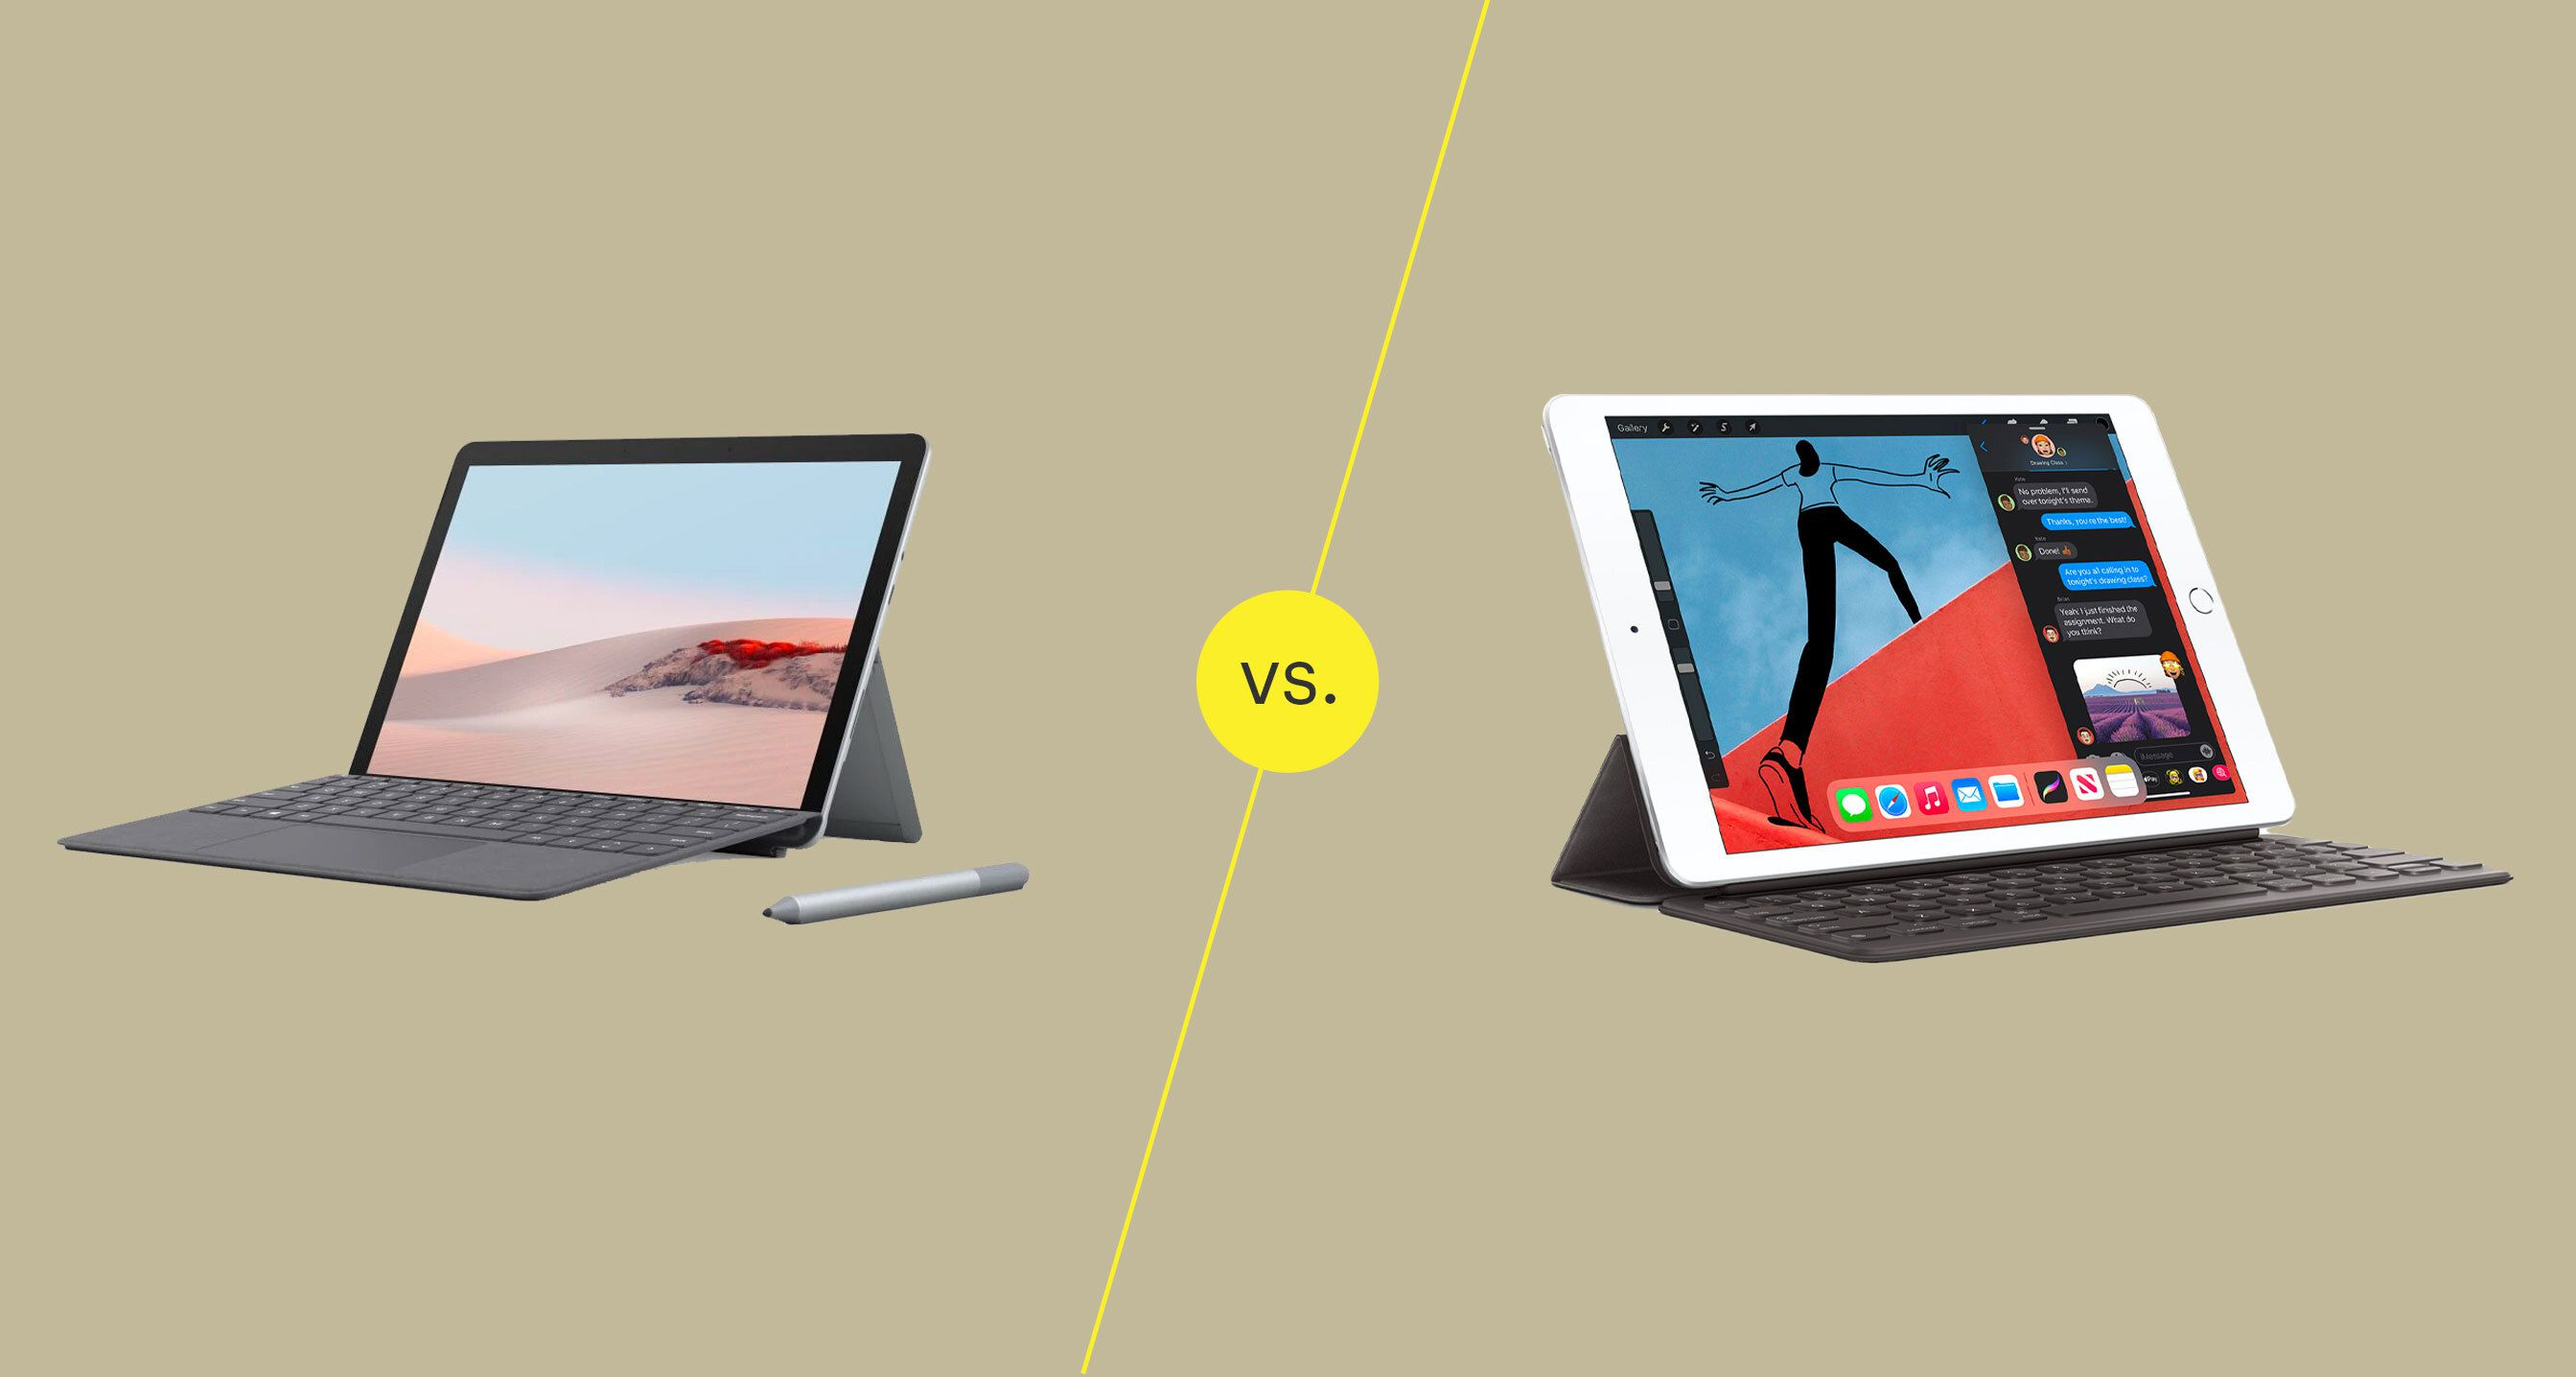 Surface Go 2 and the 8th generation iPad